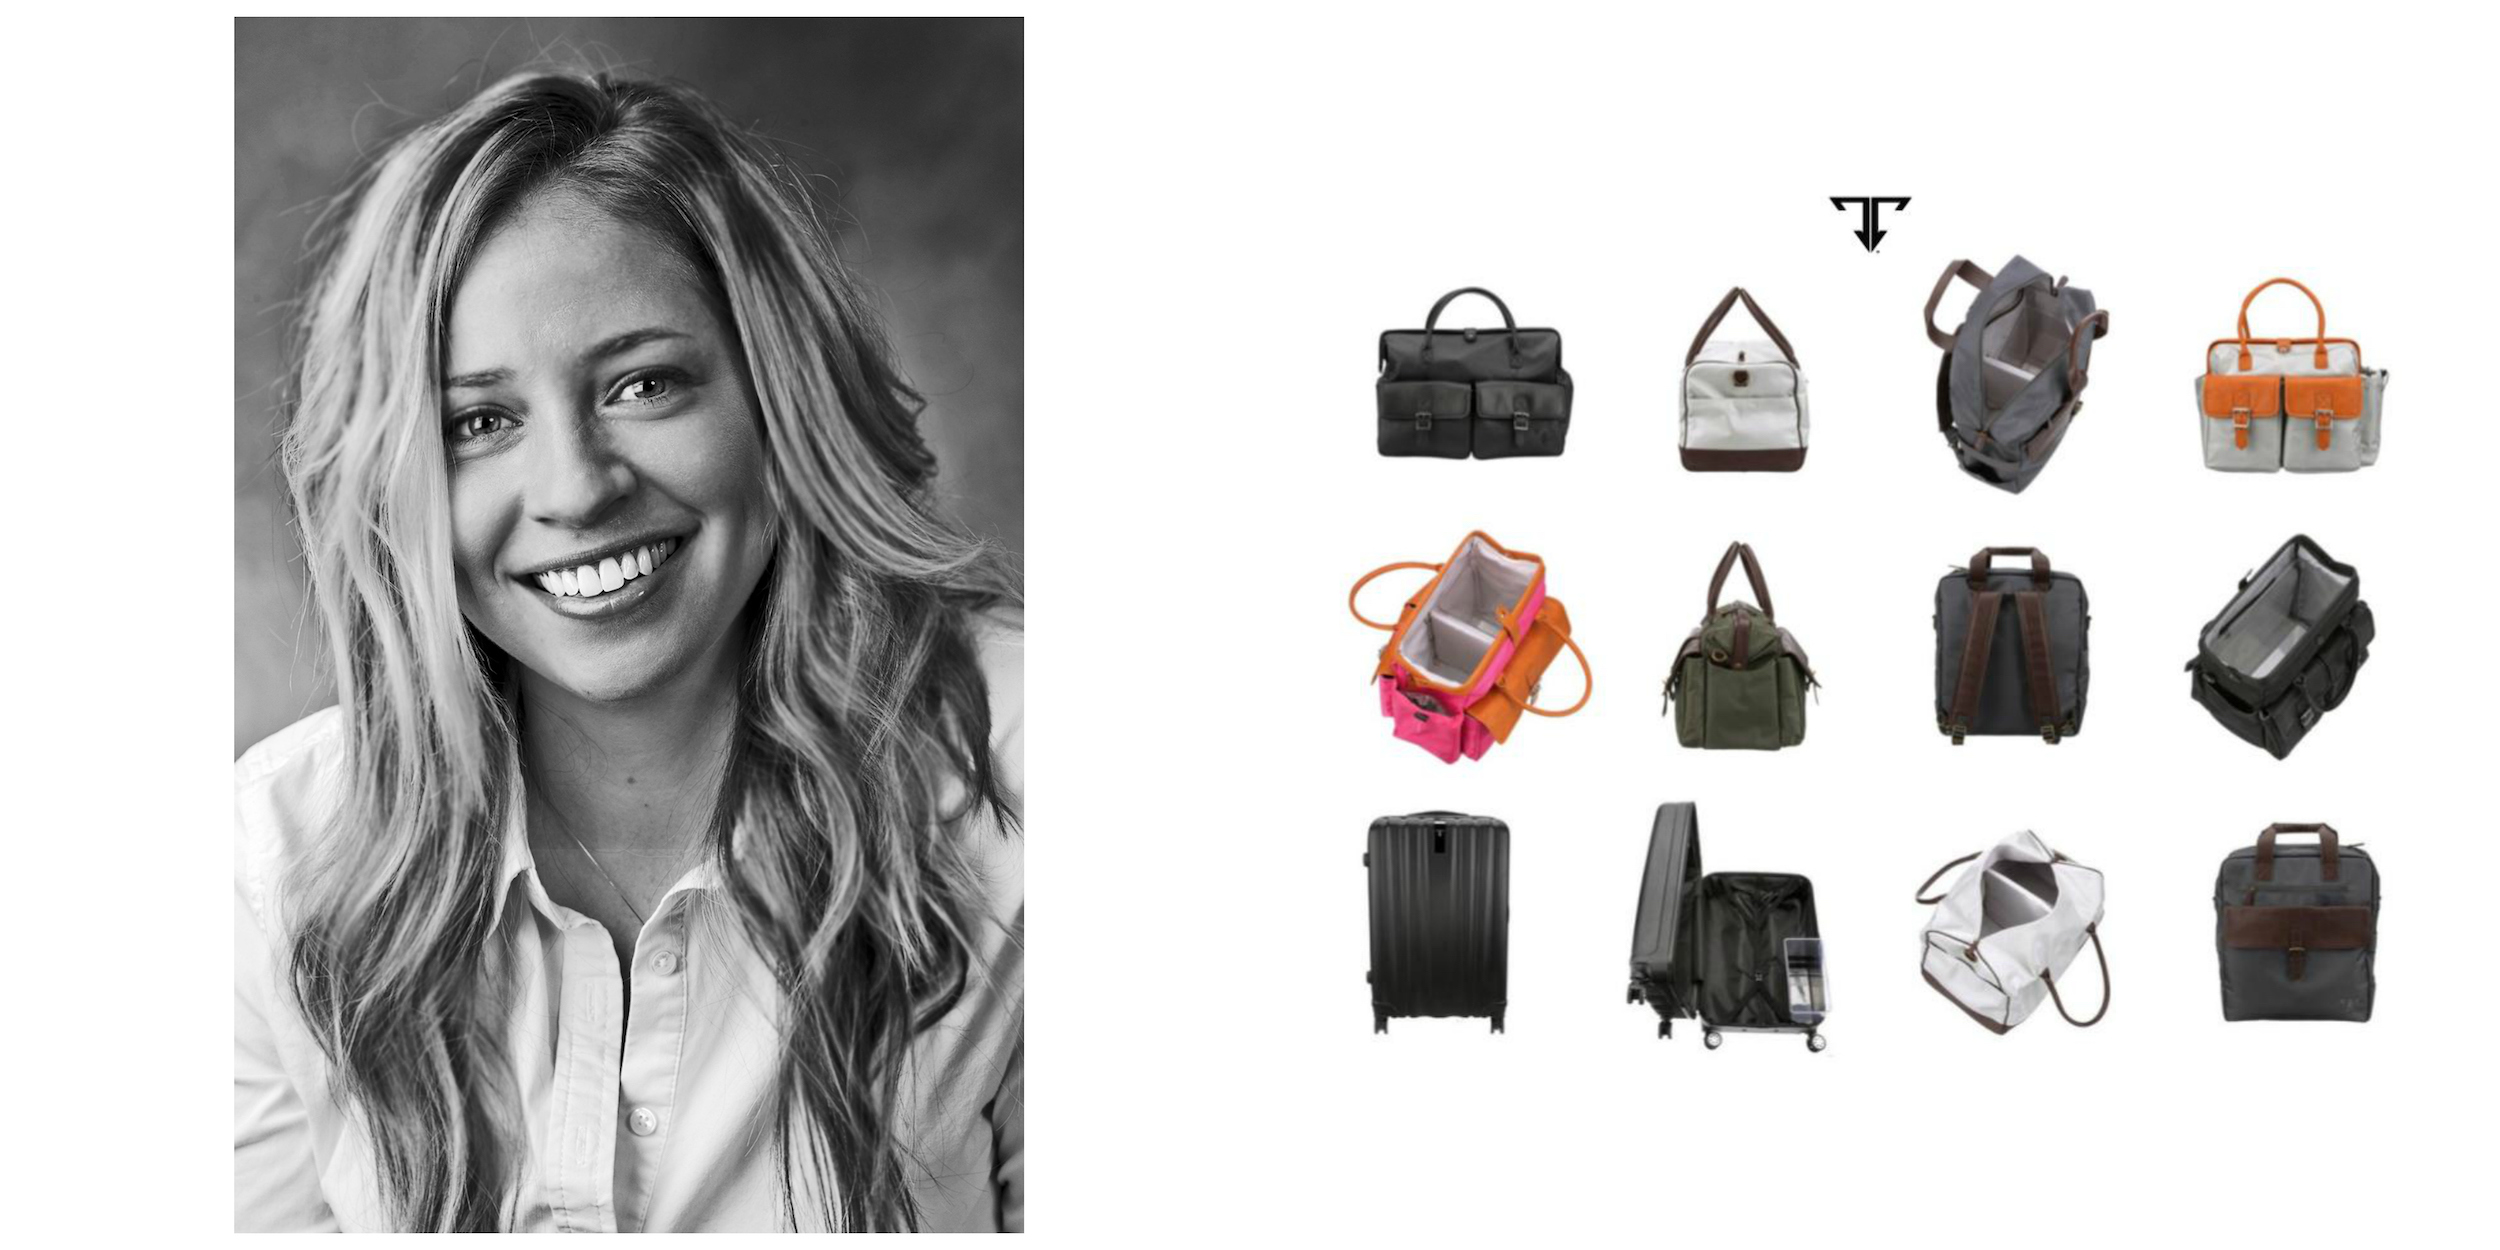 Kristin Rae of Bloomington created Inspire International in 2013 to sell her line of travel luggage exclusively through Amazon Marketplace. Rae plans to launch the redesigned Inspire Travel Luggage collection later this year on Kickstarter. (Image credit: Inspire International)